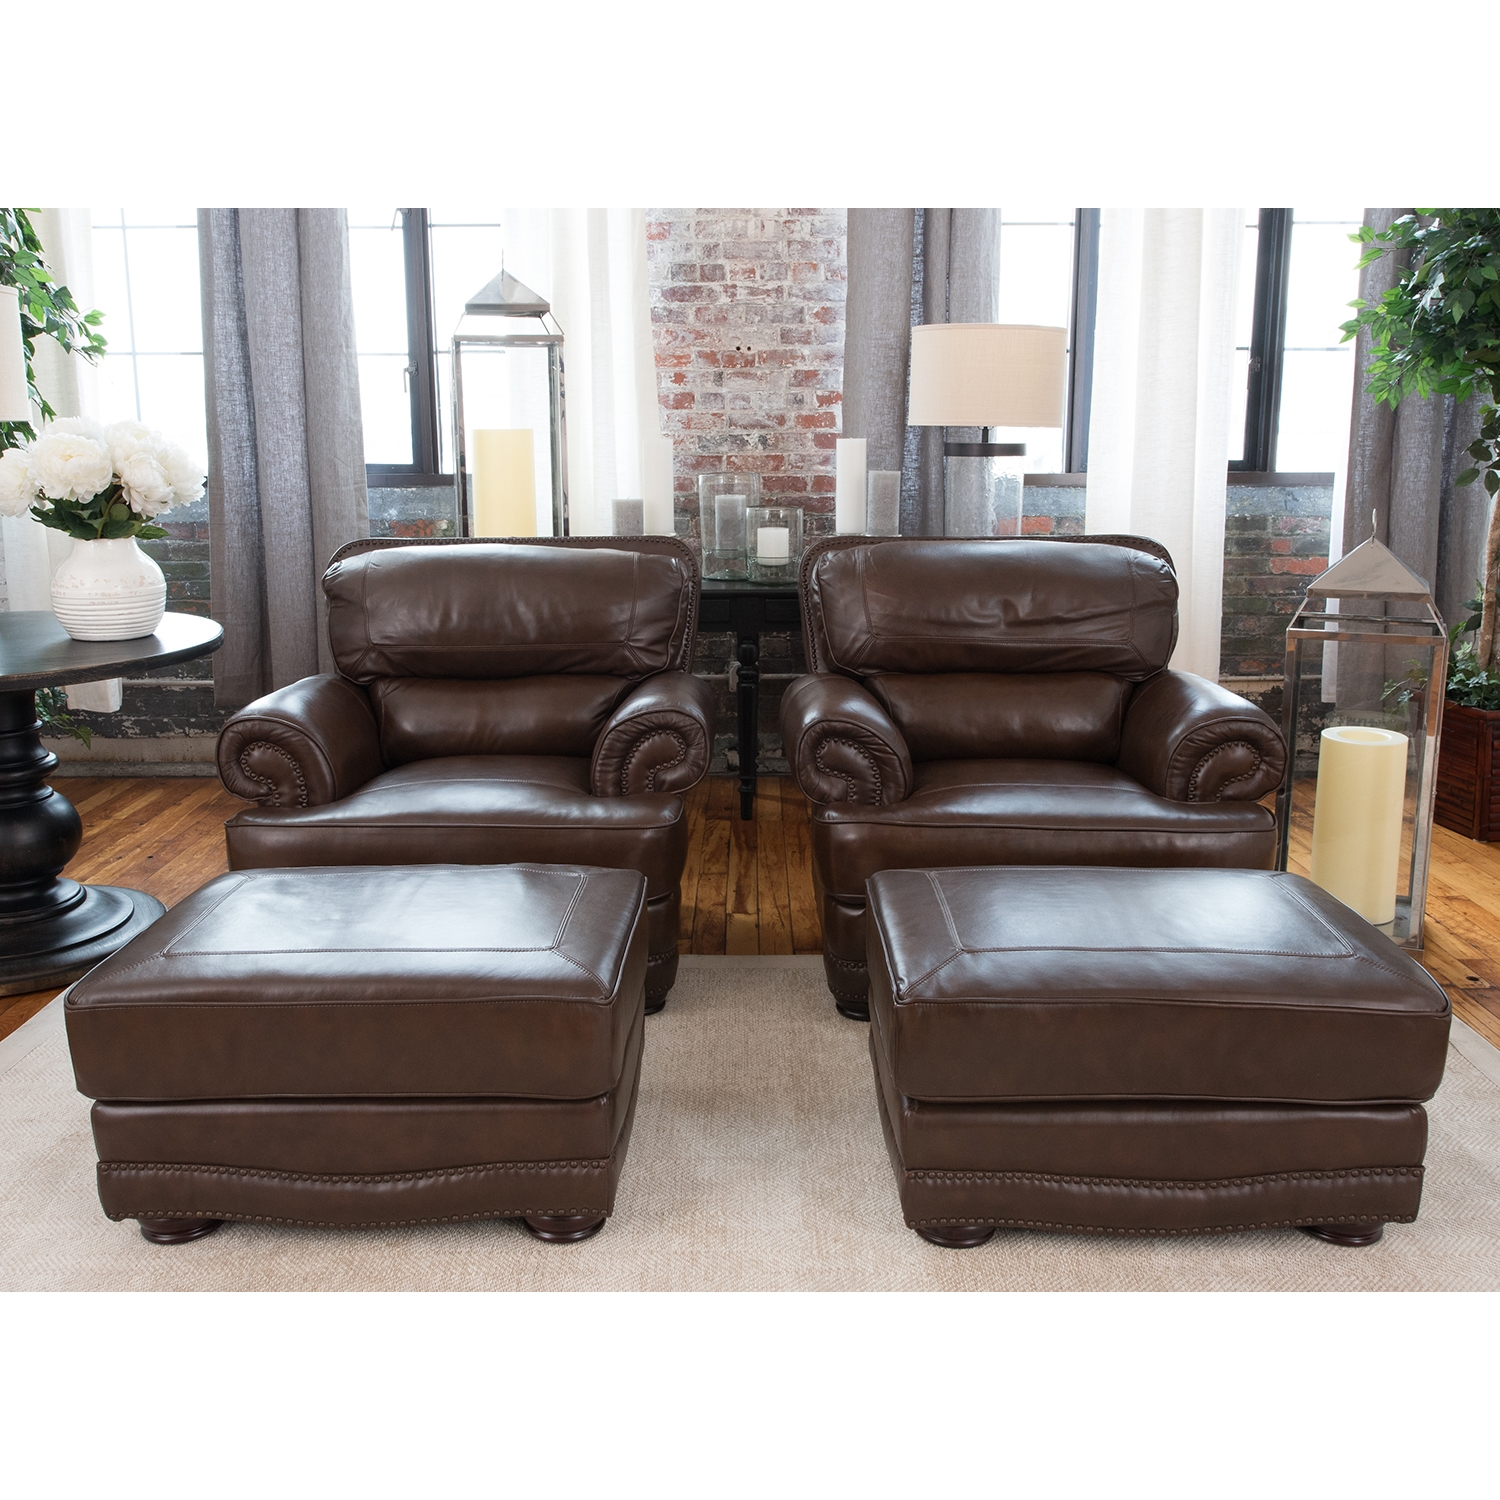 Charleston 4 Pieces Top Grain Leather Chairs and Ottomans - Toast - ELE-CHR- ...  sc 1 st  DCG Stores & Charleston 4 Pieces Top Grain Leather Chairs and Ottomans - Toast ...